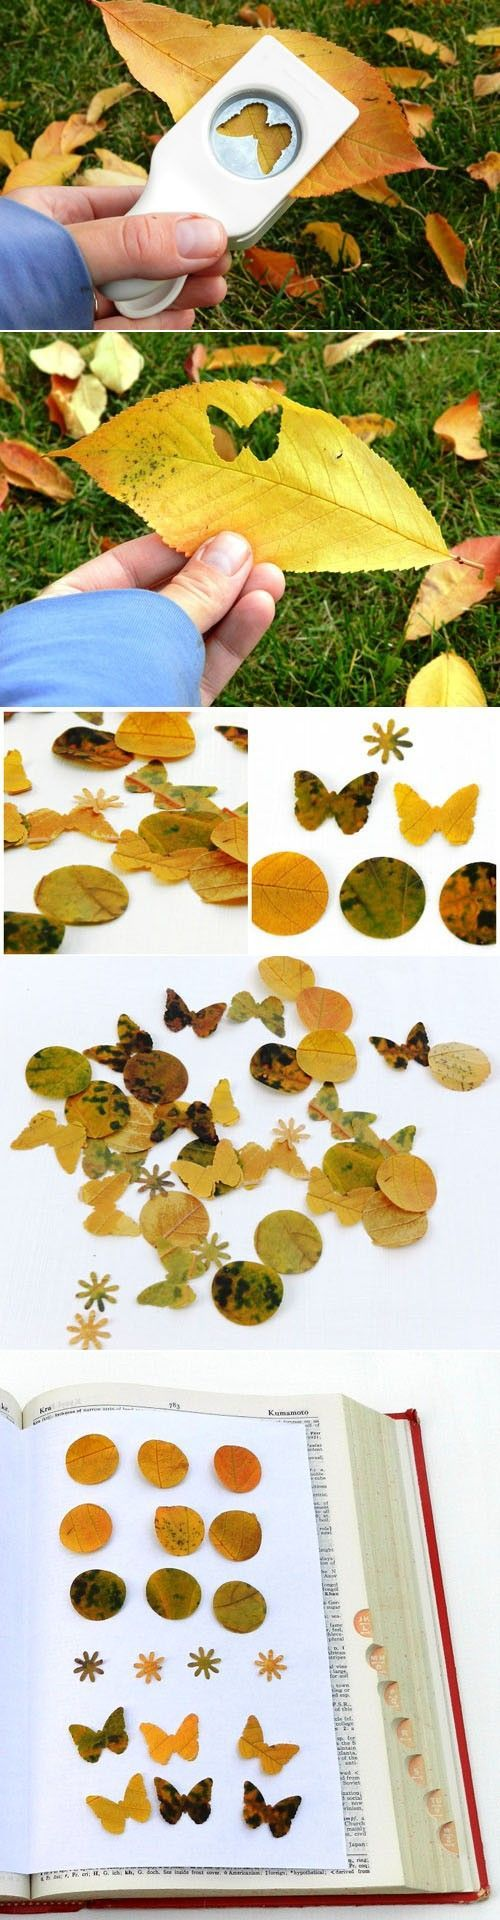 This is awesome! Punching shapes from autumn leaves.... great new use of natural art materials: